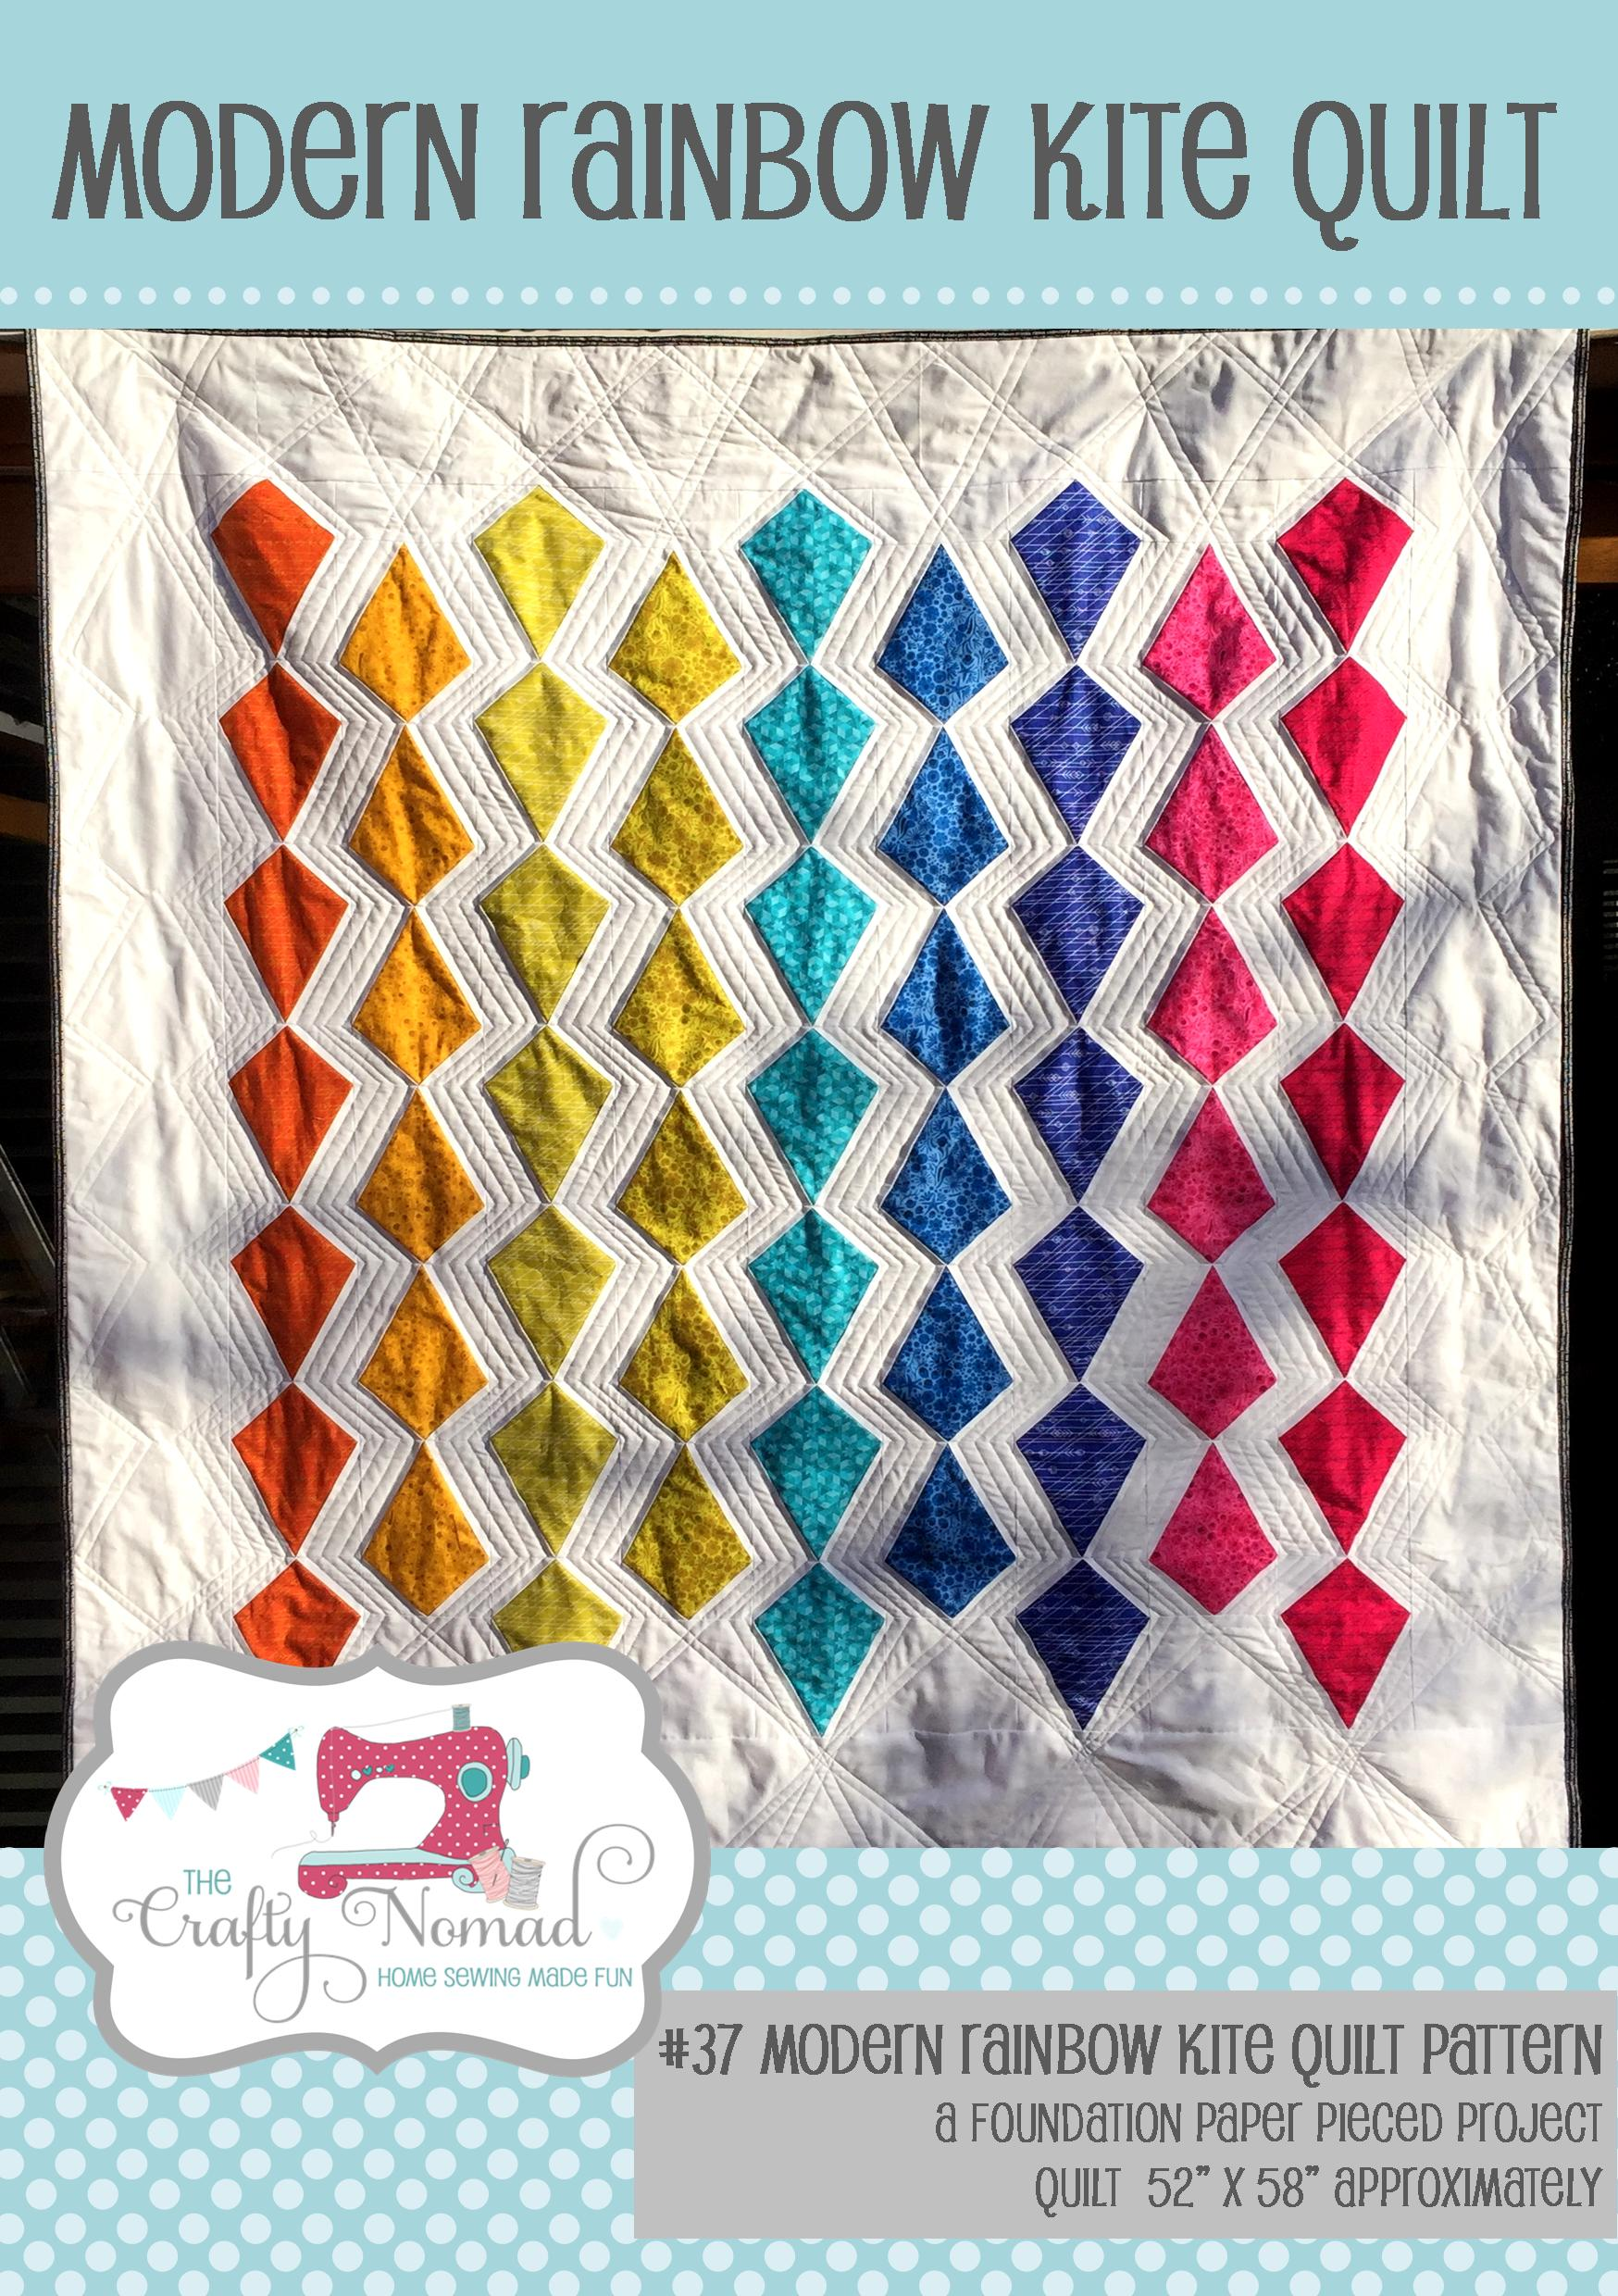 Rainbow Kite Quilt - This modern patchwork pattern consists of a kite shaped foundation paper piecing pattern. I've made it in a rainbow spectrum but you could make it in any colour way. An ombre spectrum would look fabulous too. This pattern will provide dimensions to make a throw size quilt.The quilt finishes up at 52 x 58 inches approximately.